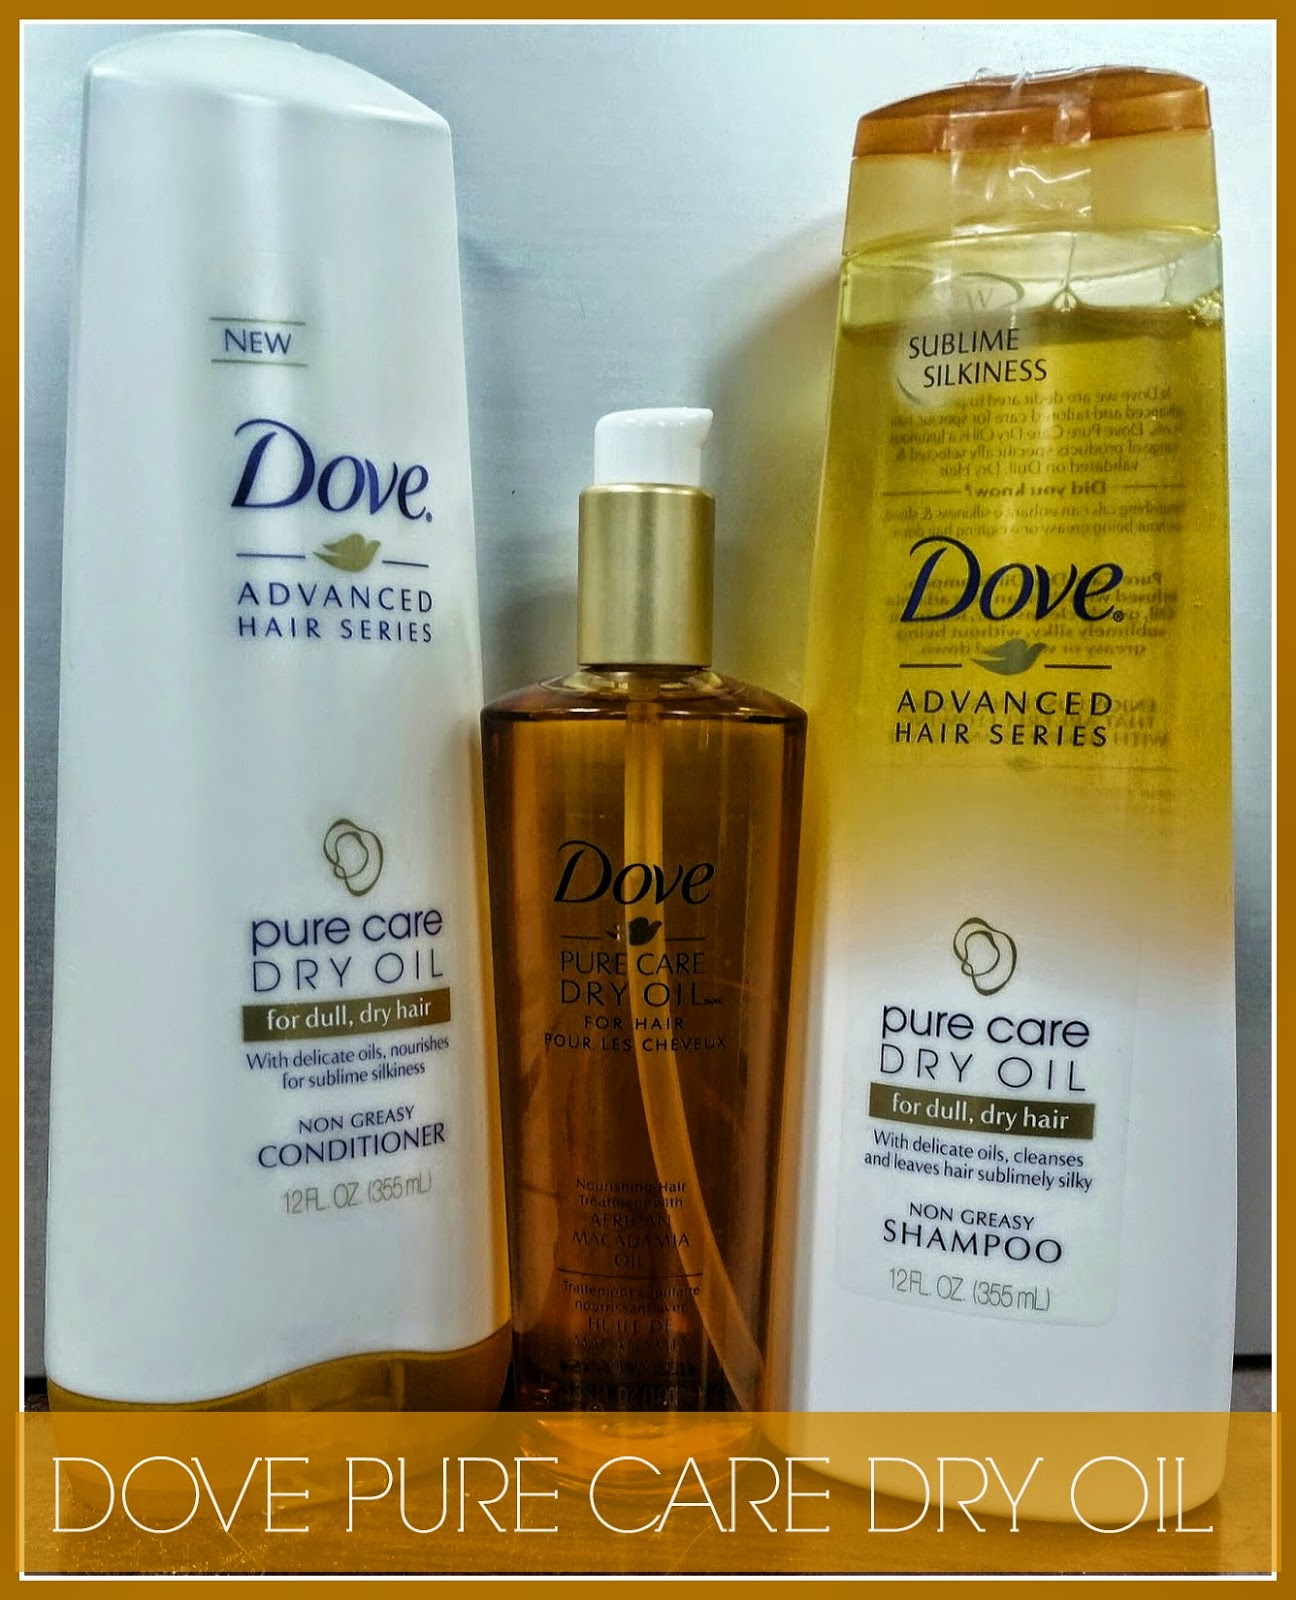 DOVE Pure Care Dry Oil Giveaway!